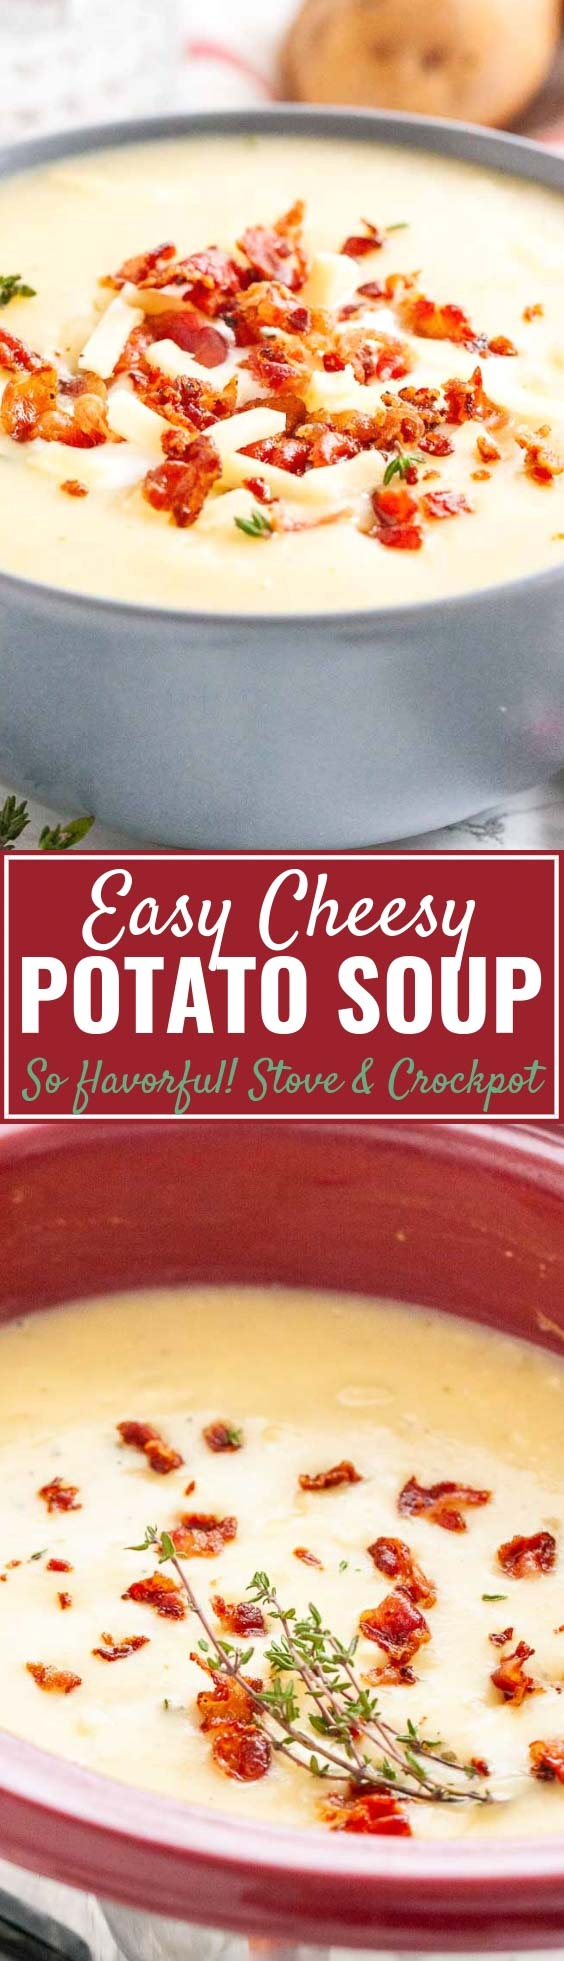 Cheesy Potato Soup is the perfect comfort food for cold winter evenings that your whole family will love! This creamy crockpot potato soup is loaded with flavor, comforting, and easy to throw together. Perfect for cold winter days! #soupseason #crockpotmeals #souprecipes #potatosoup #cheesypotatosoup #potatocheesesoup